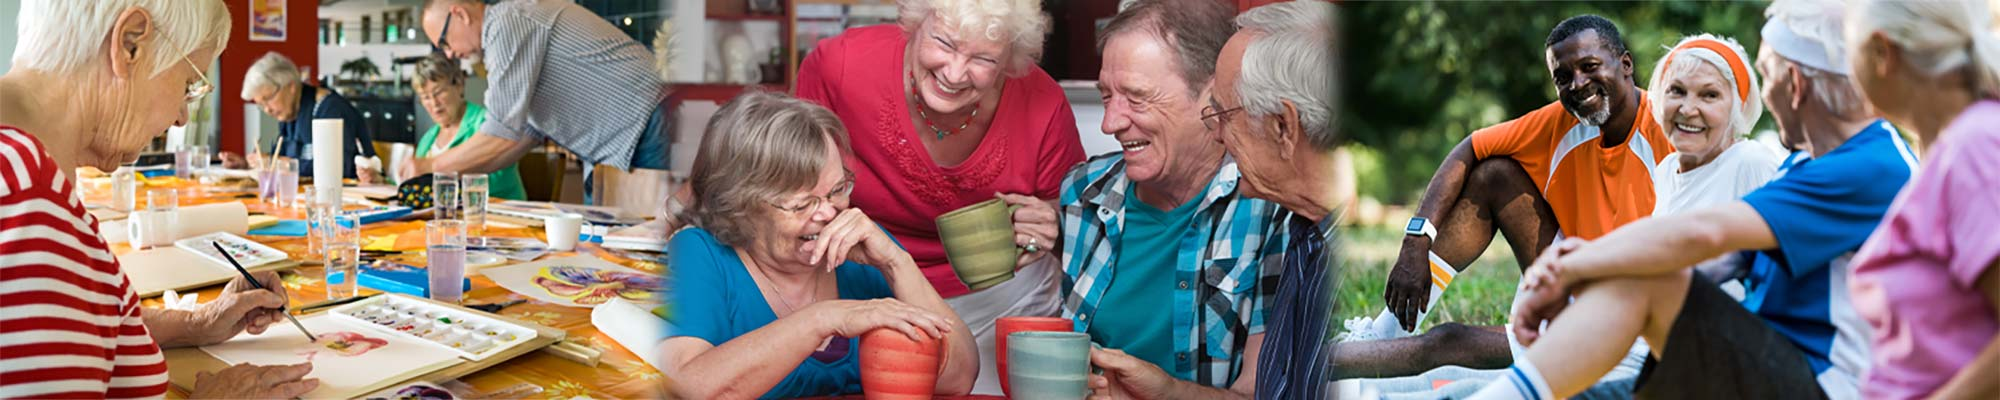 Three images of elderly people in community laughing and hanging out